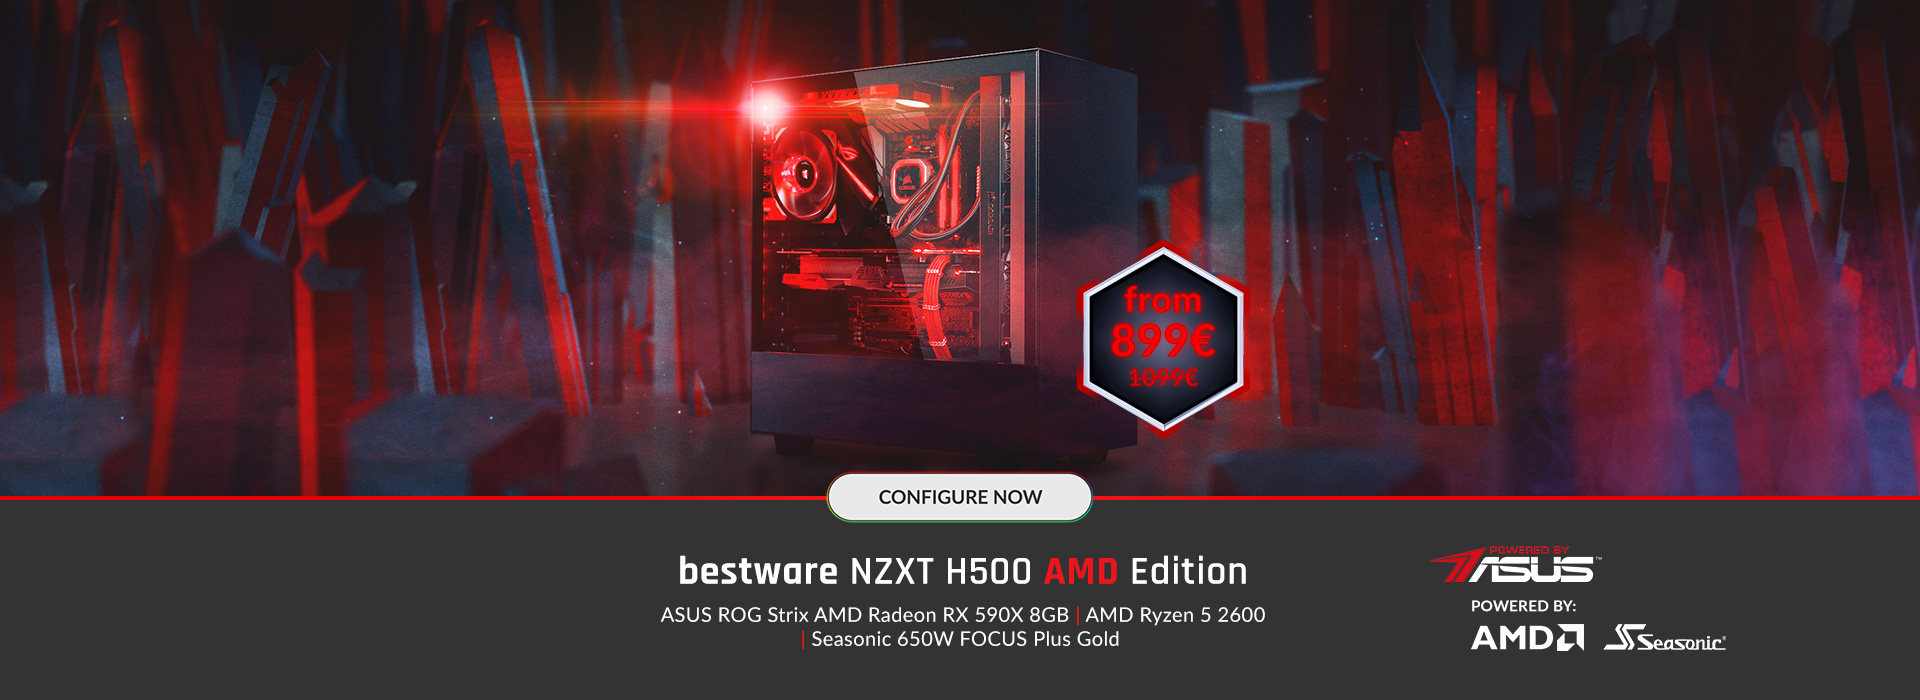 bestware NZXT H500 - AMD Edition